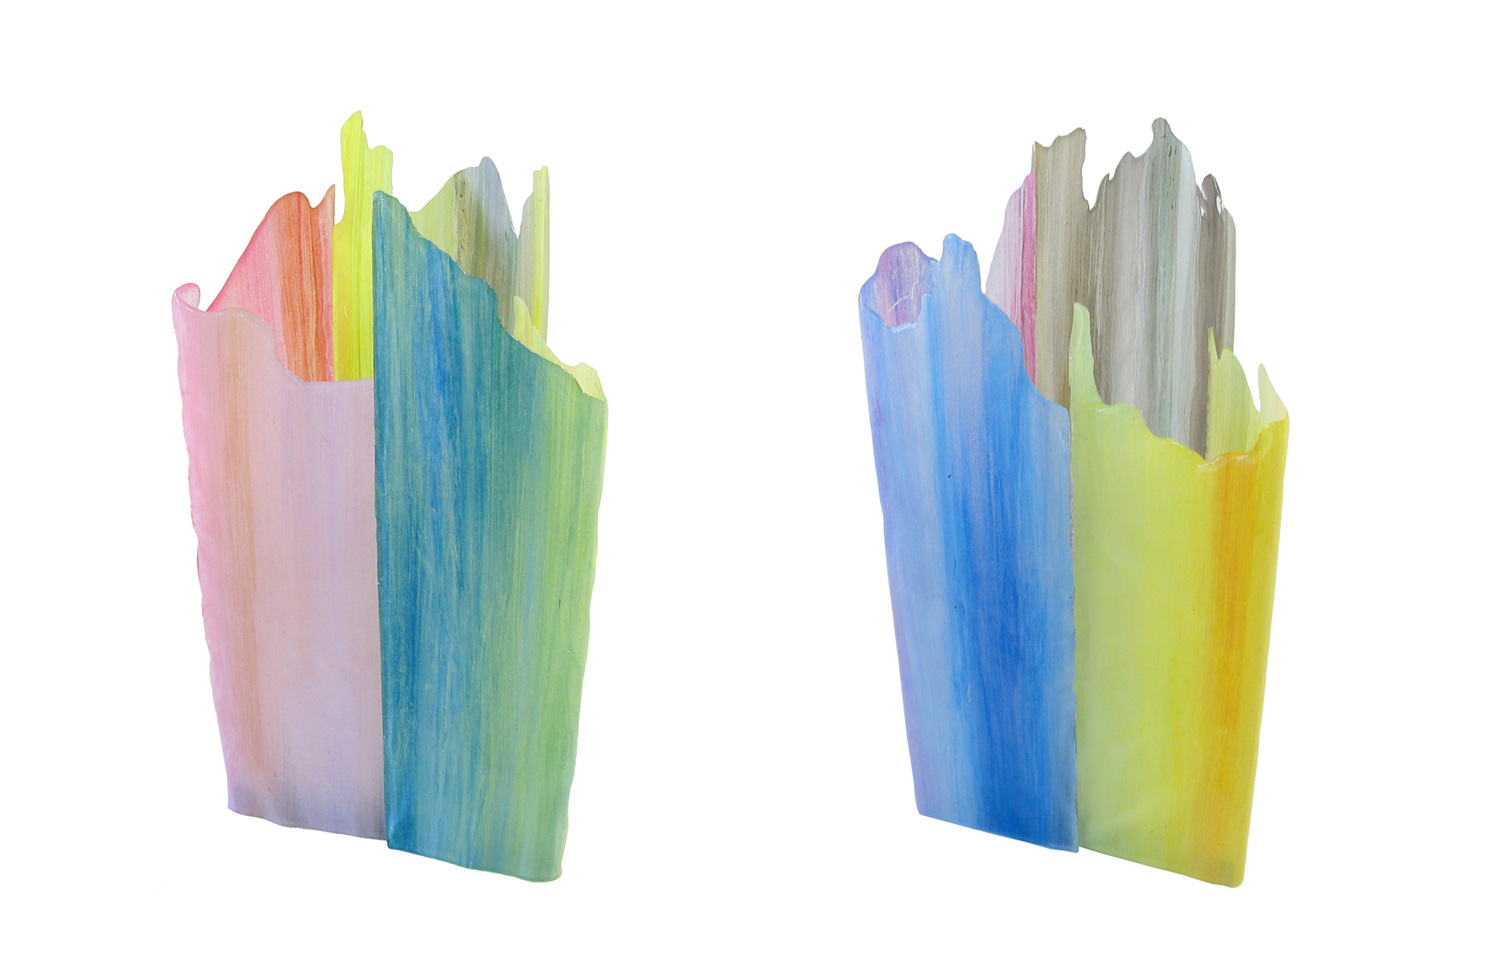 Painterly Spectrum Resin Table Lamps by Taeg Nishimoto